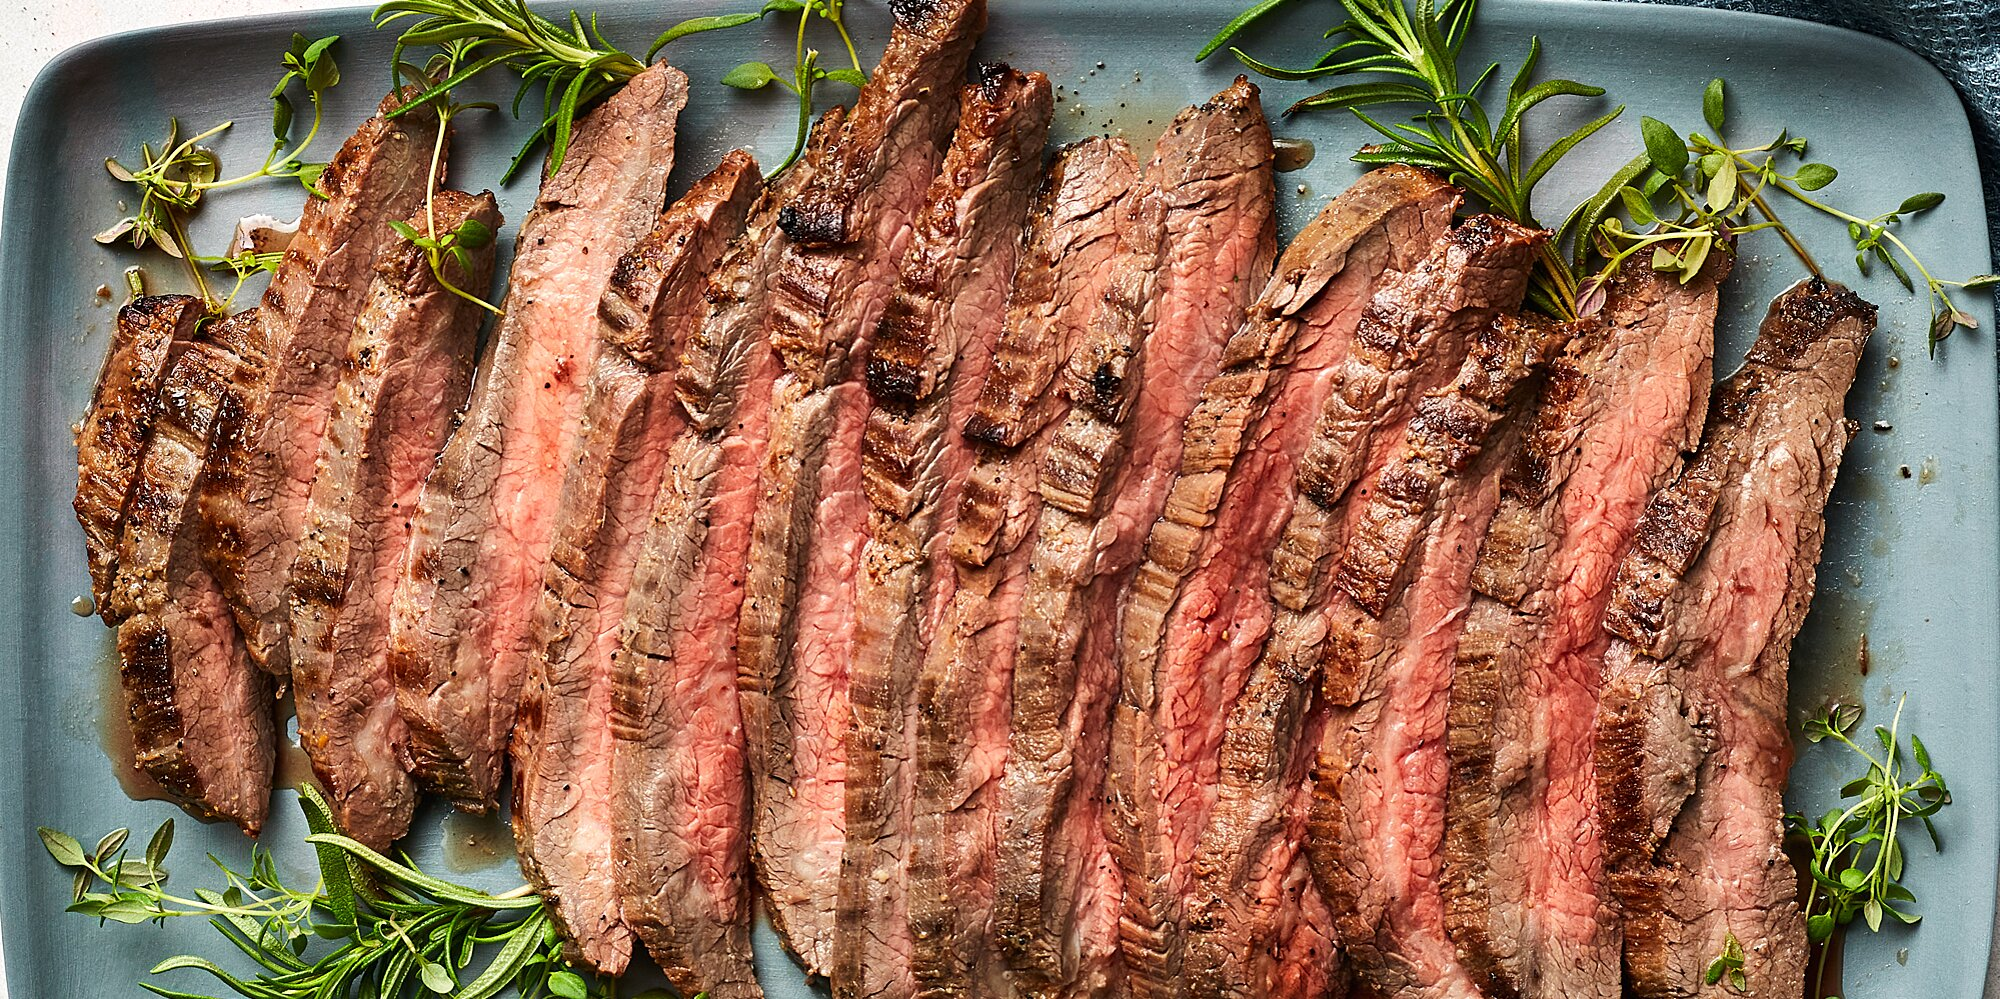 17 Steak Marinade Recipes to Keep in Your Back Pocket